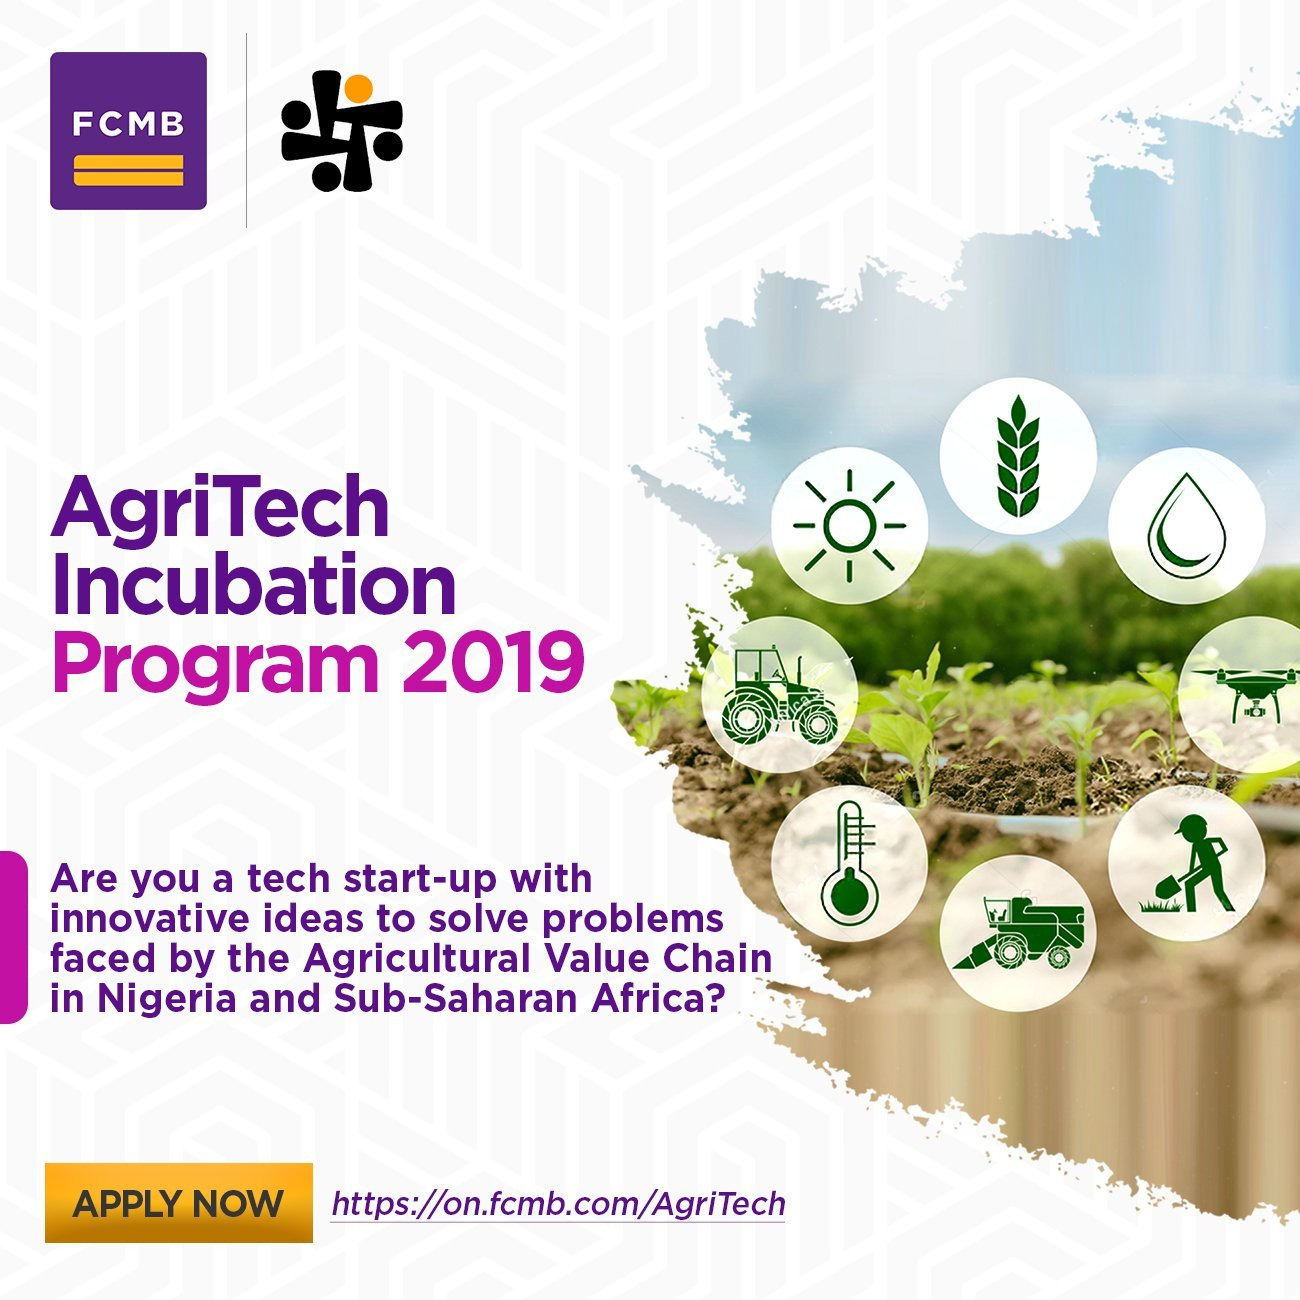 FCMB Wennovation AgriTech Incubation Program